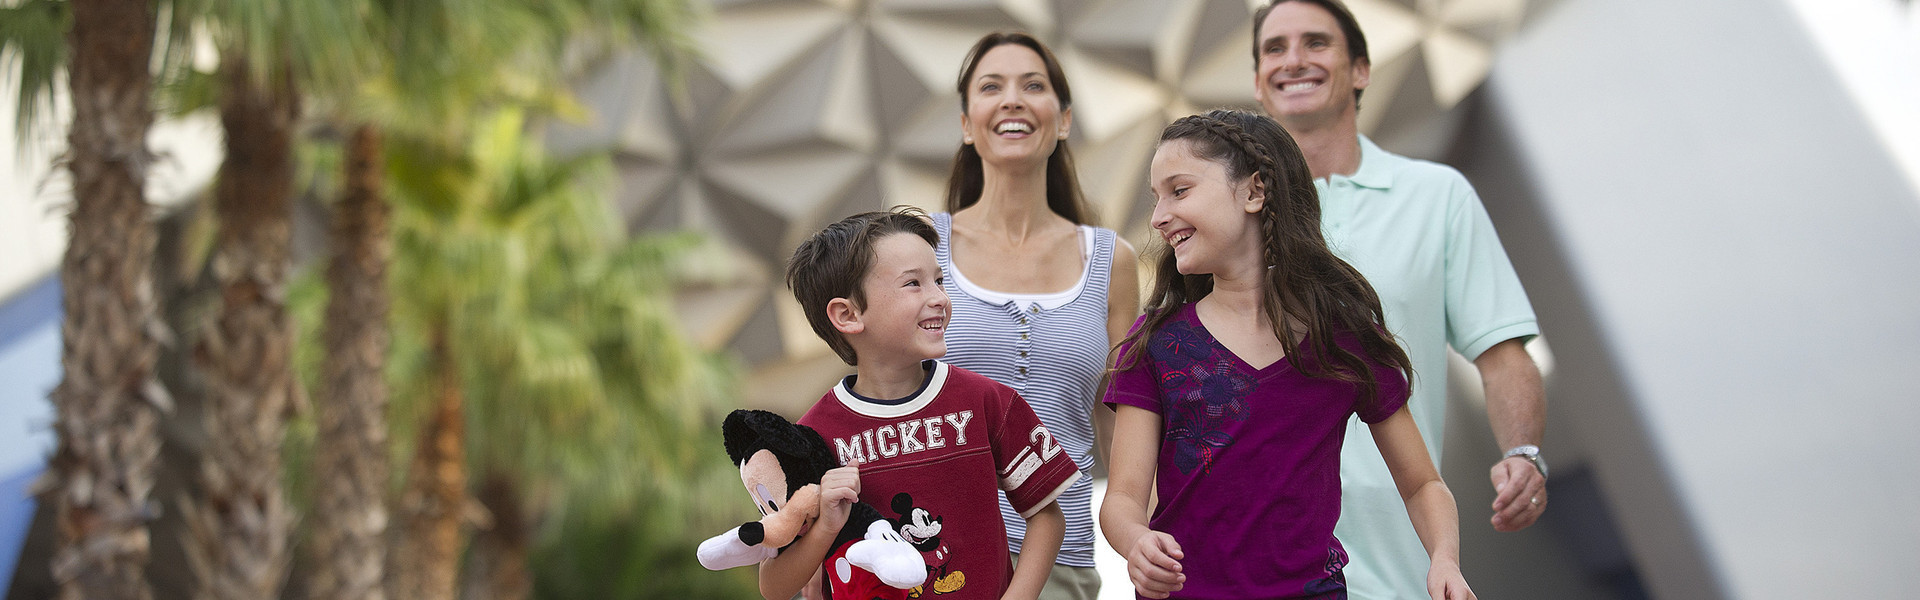 Tickets2You Attraction Tickets in Orlando | Family Vacations